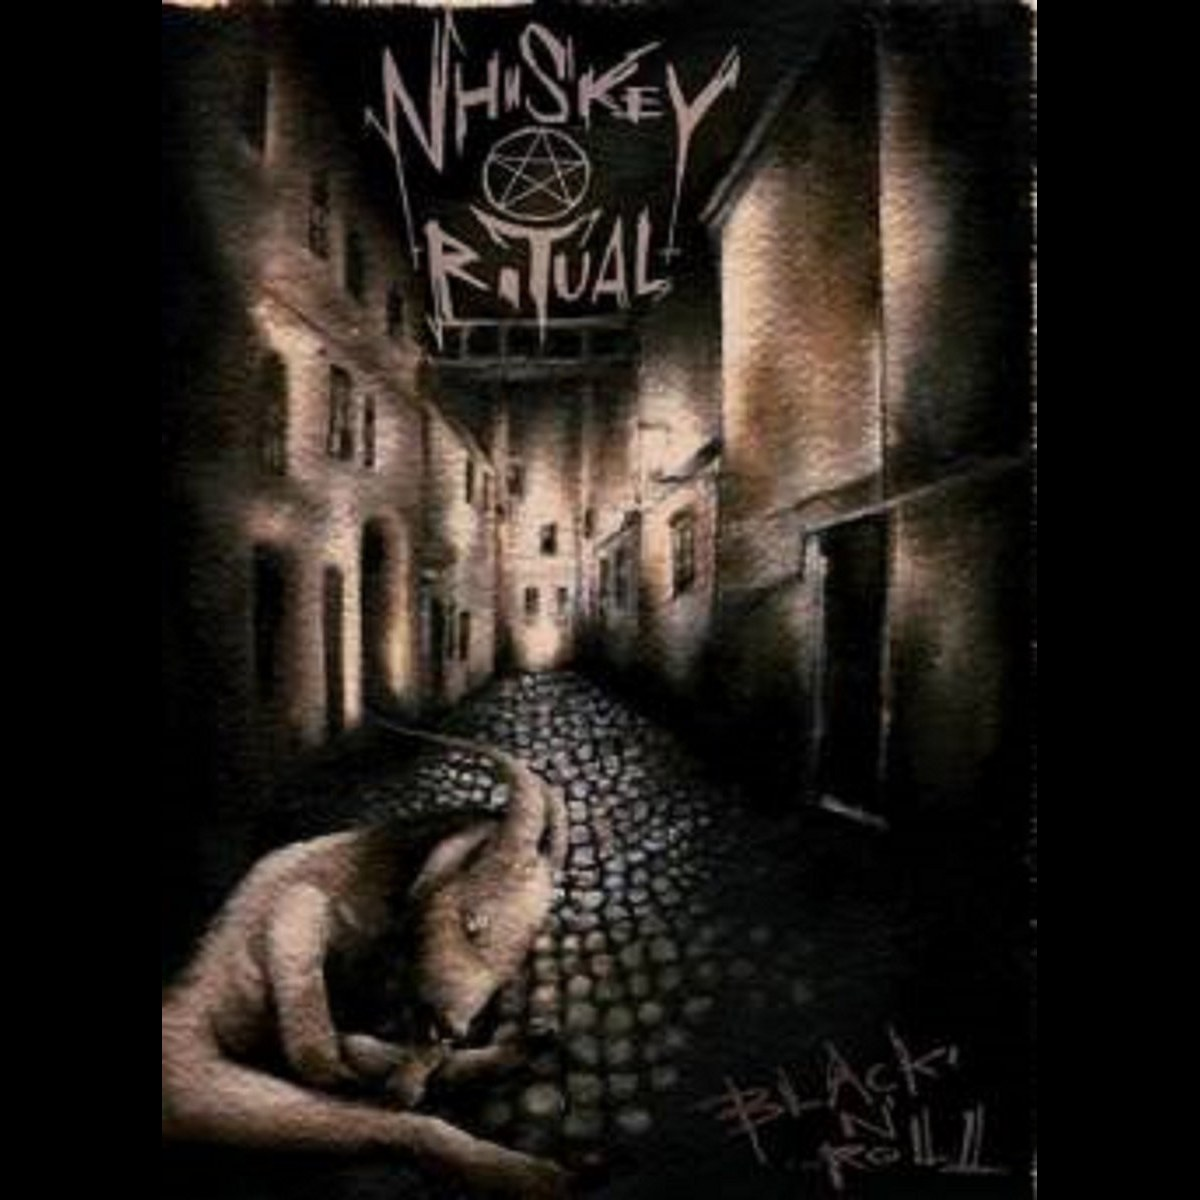 Whiskey Ritual - Black 'n' Roll